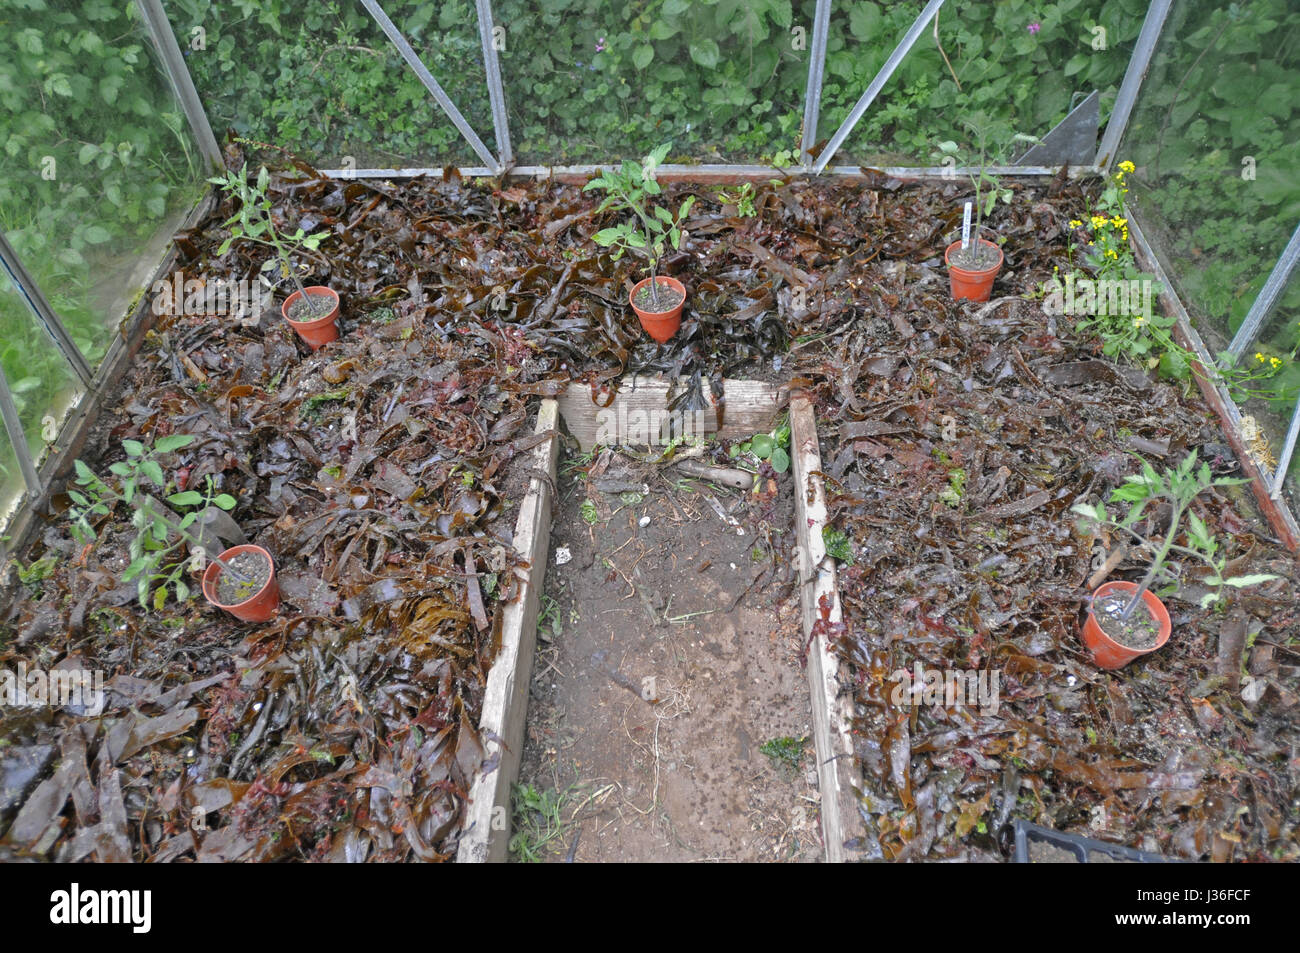 Seaweed laid onto the soil in a greenhouse to increase fertility. Tomato plants positioned before planting. - Stock Image